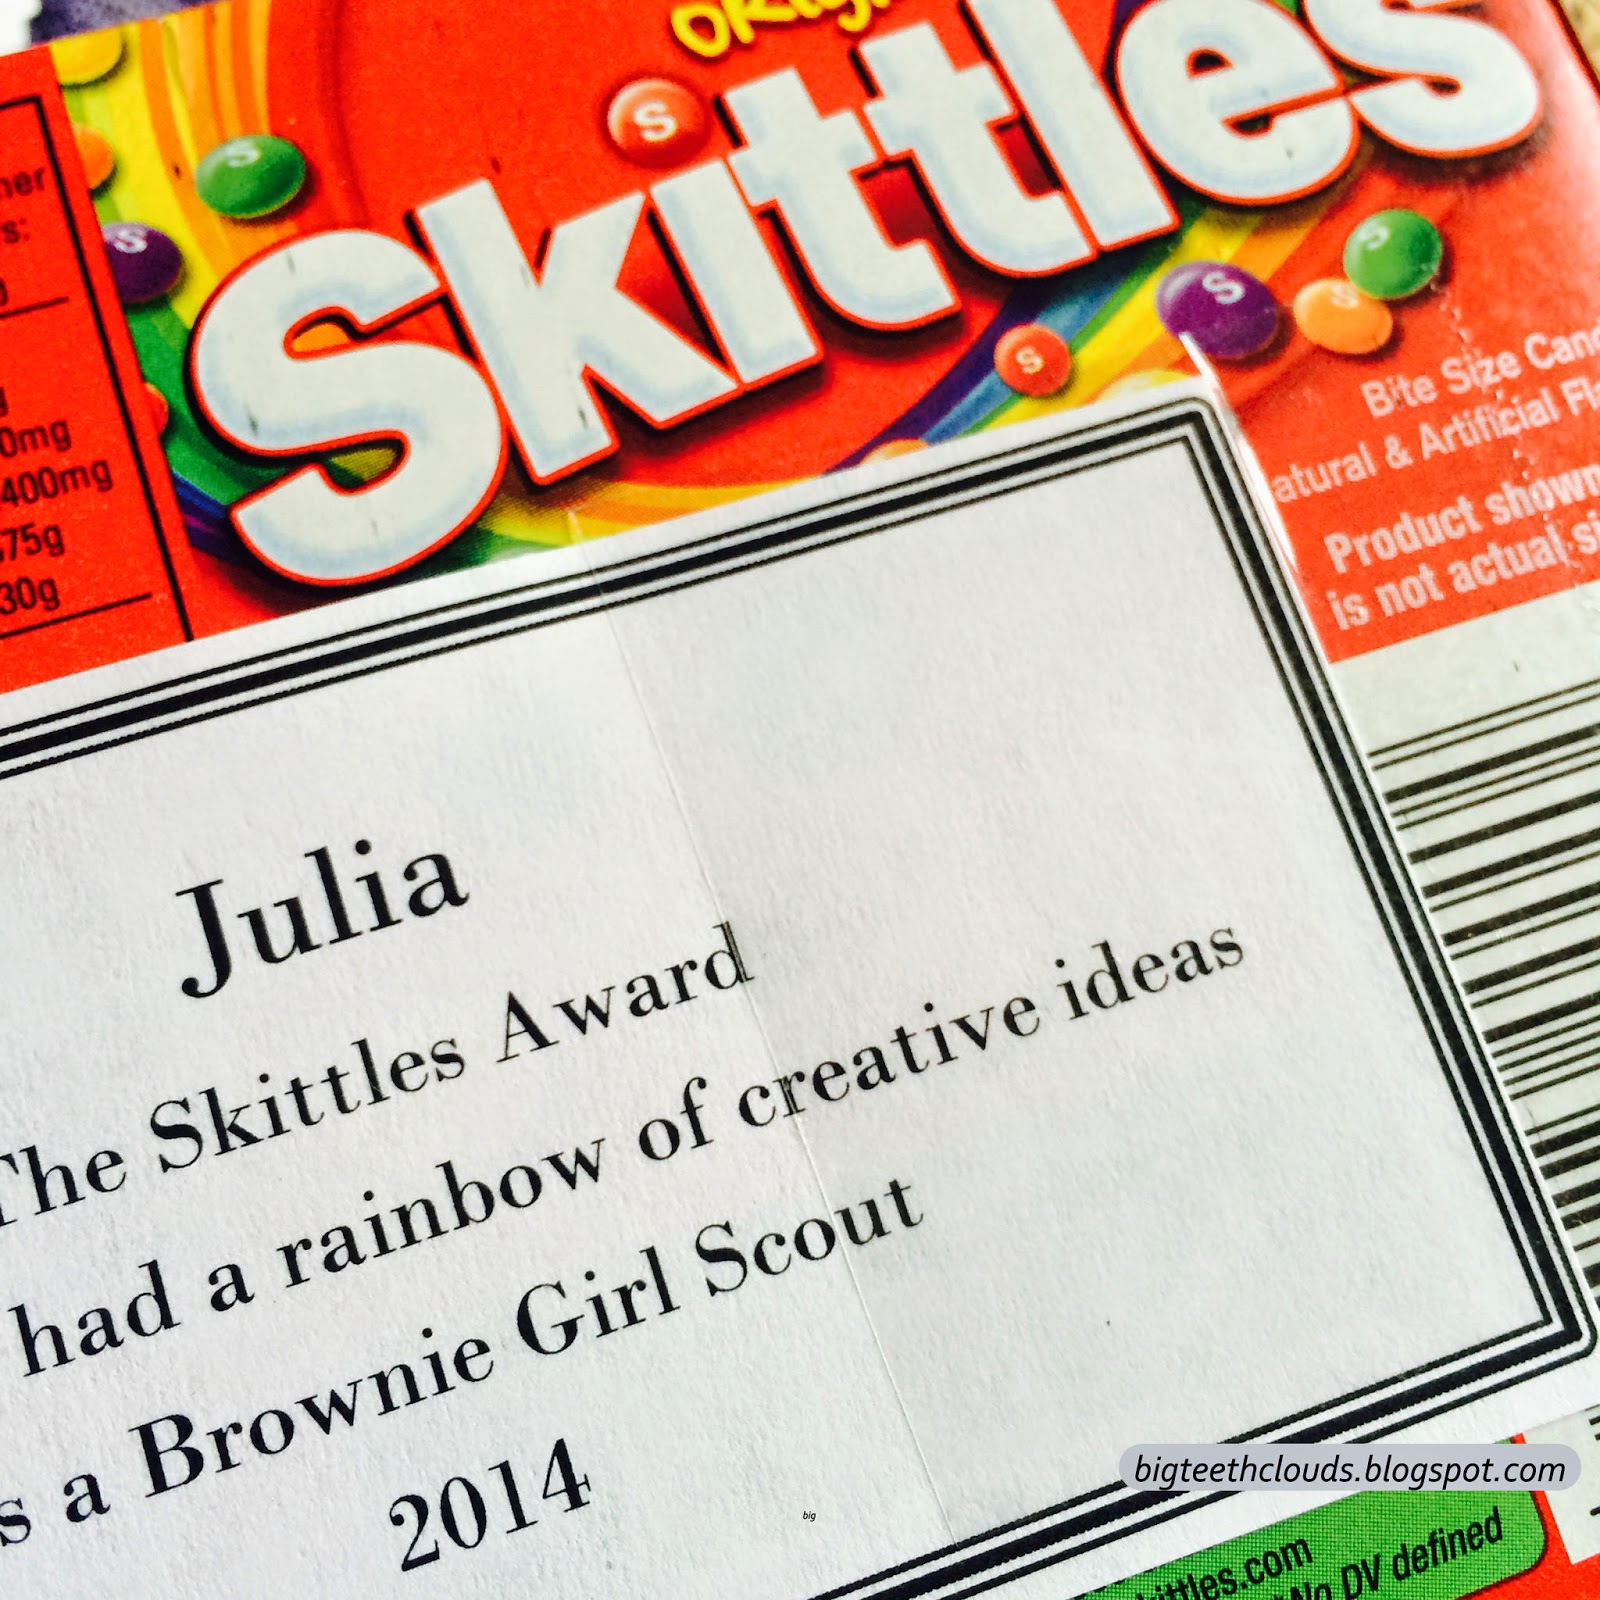 A finished candy award with the identifying slip of paper taped in place.